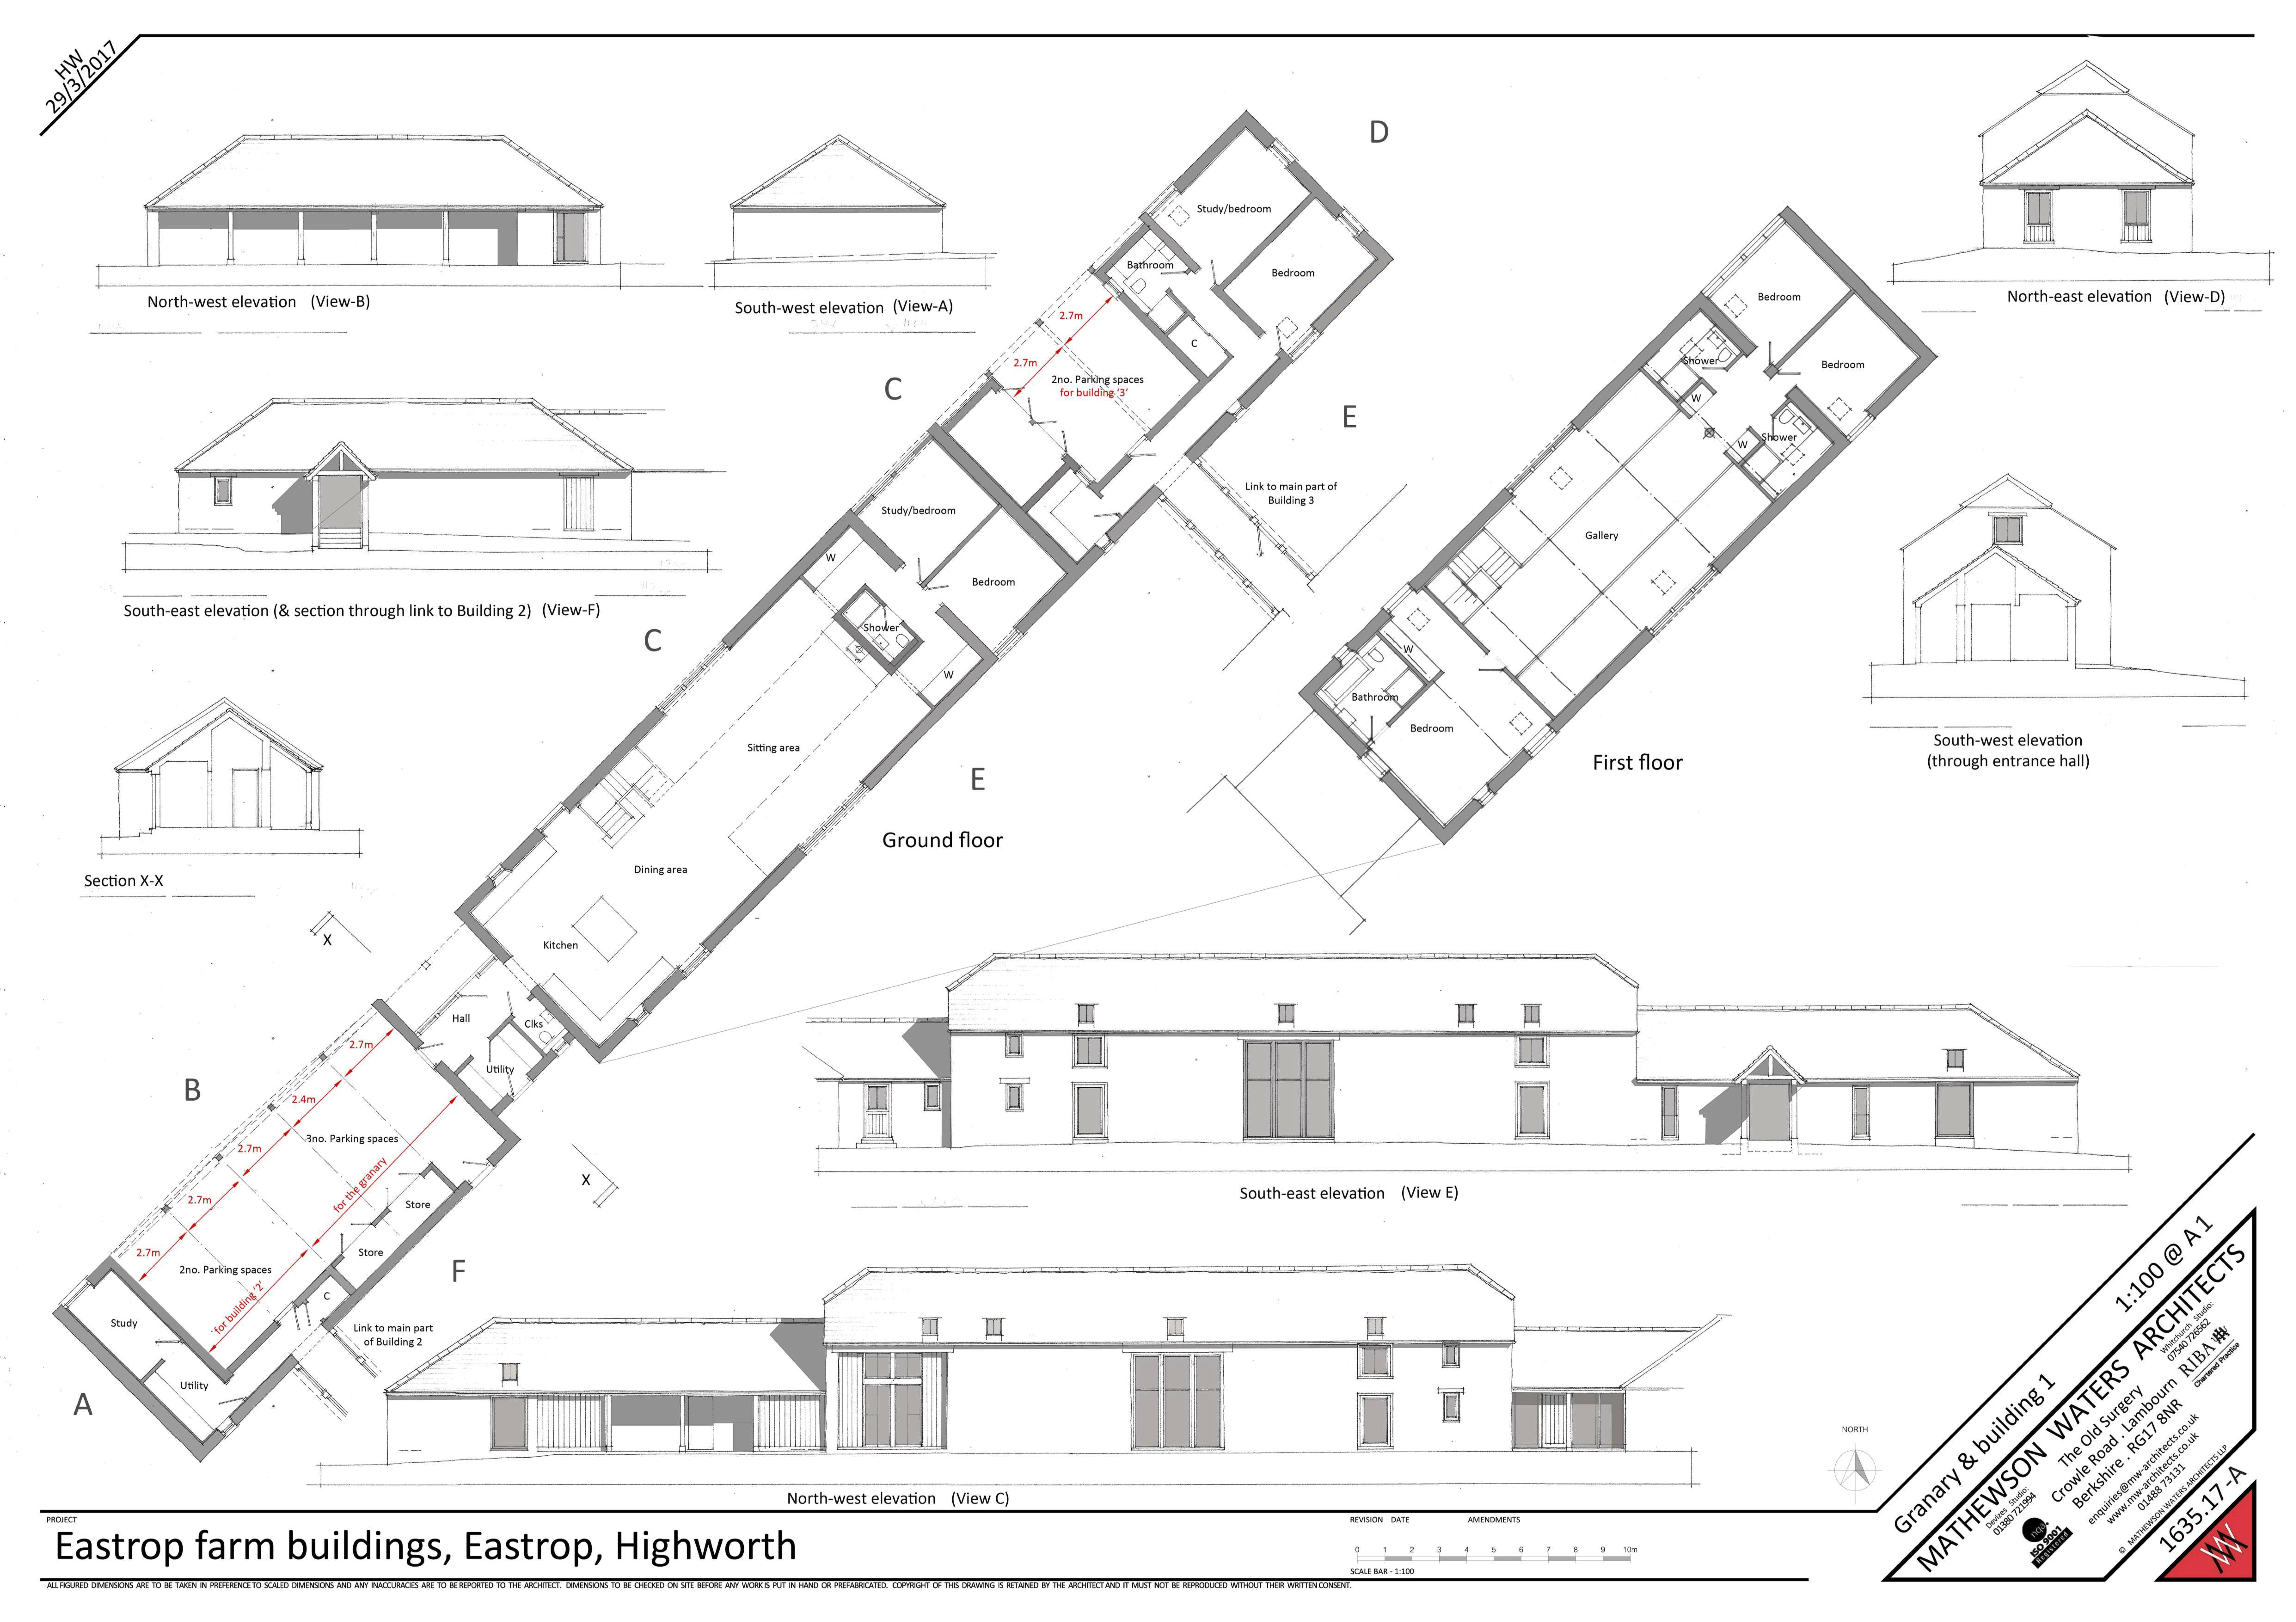 Floorplans For Shrivenham road, Highworth, Wiltshire